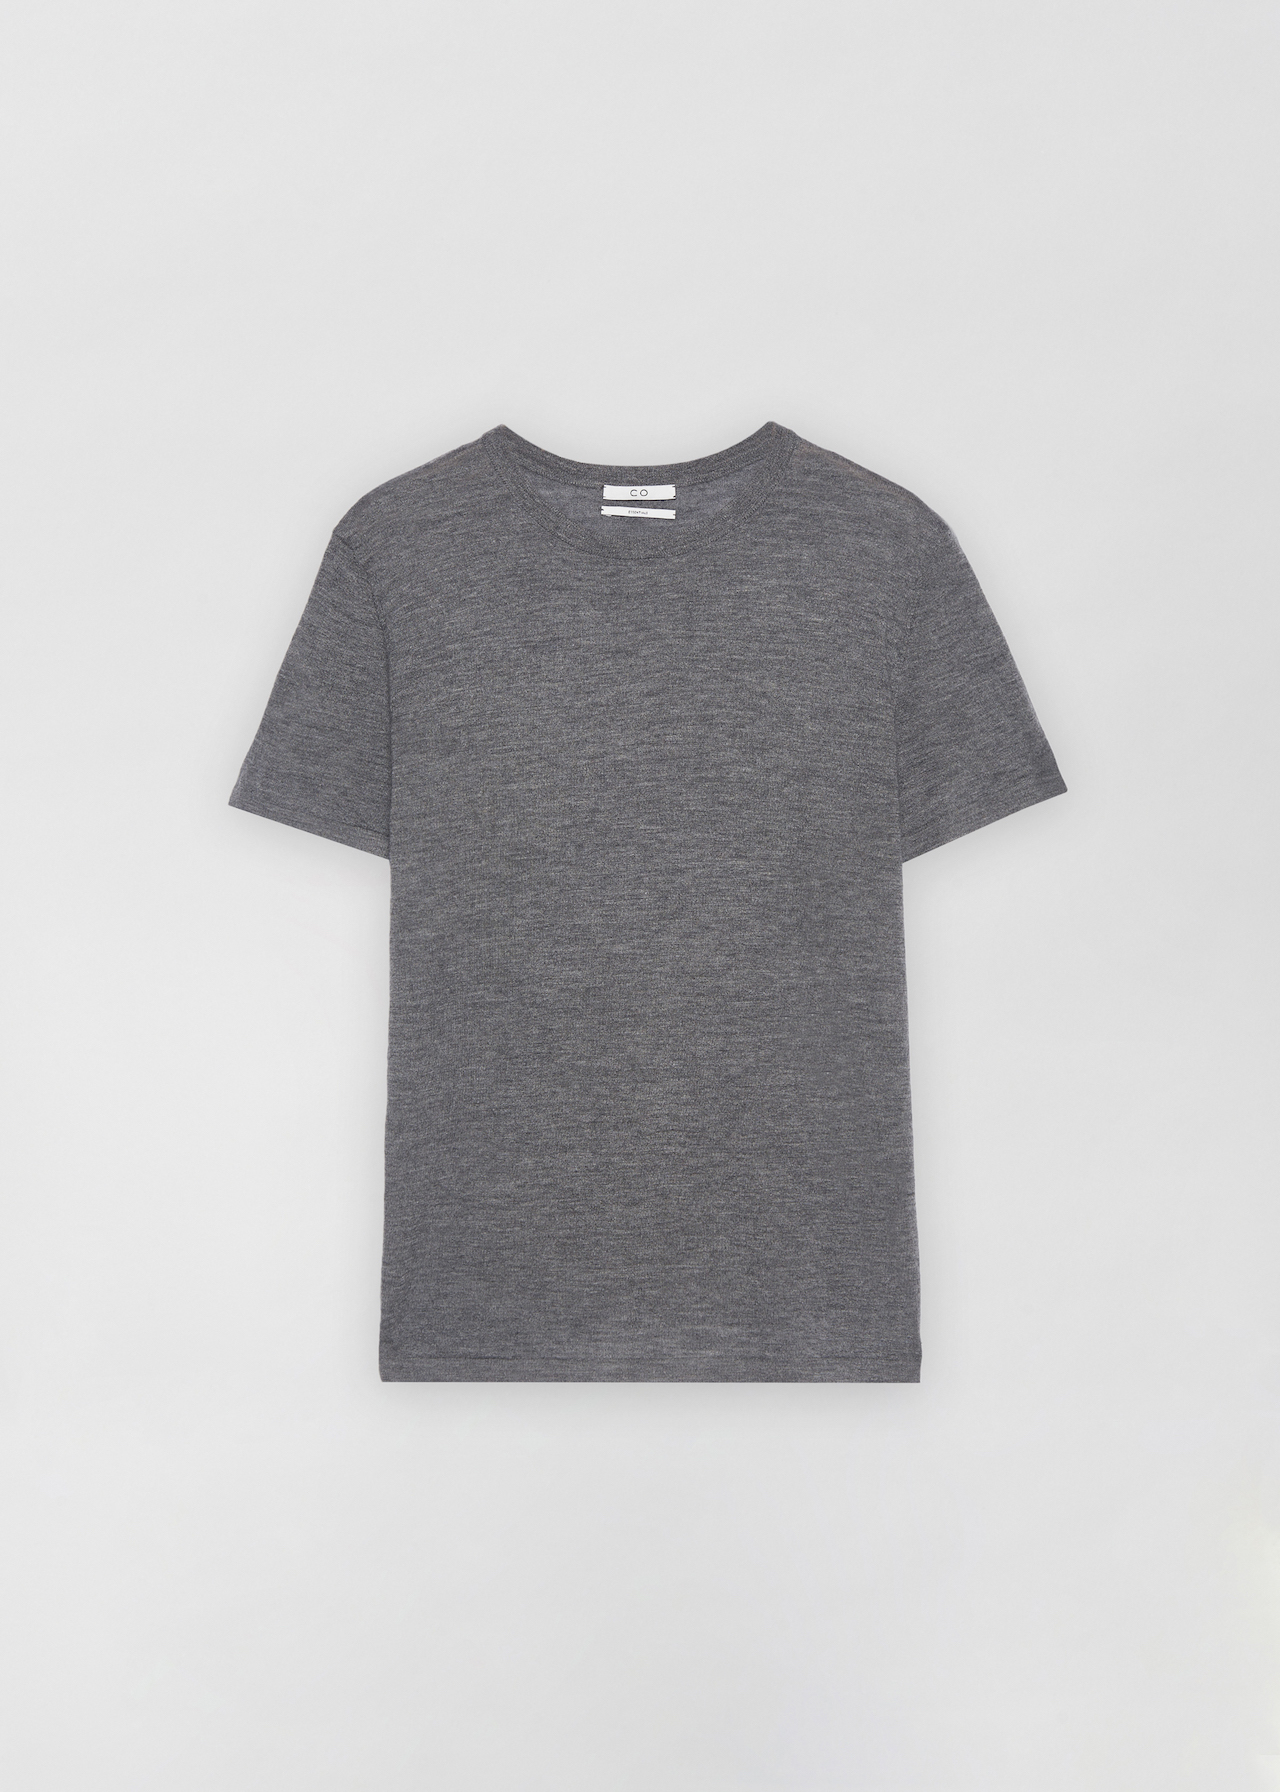 Cashmere T-Shirt - Black in Grey by Co Collections